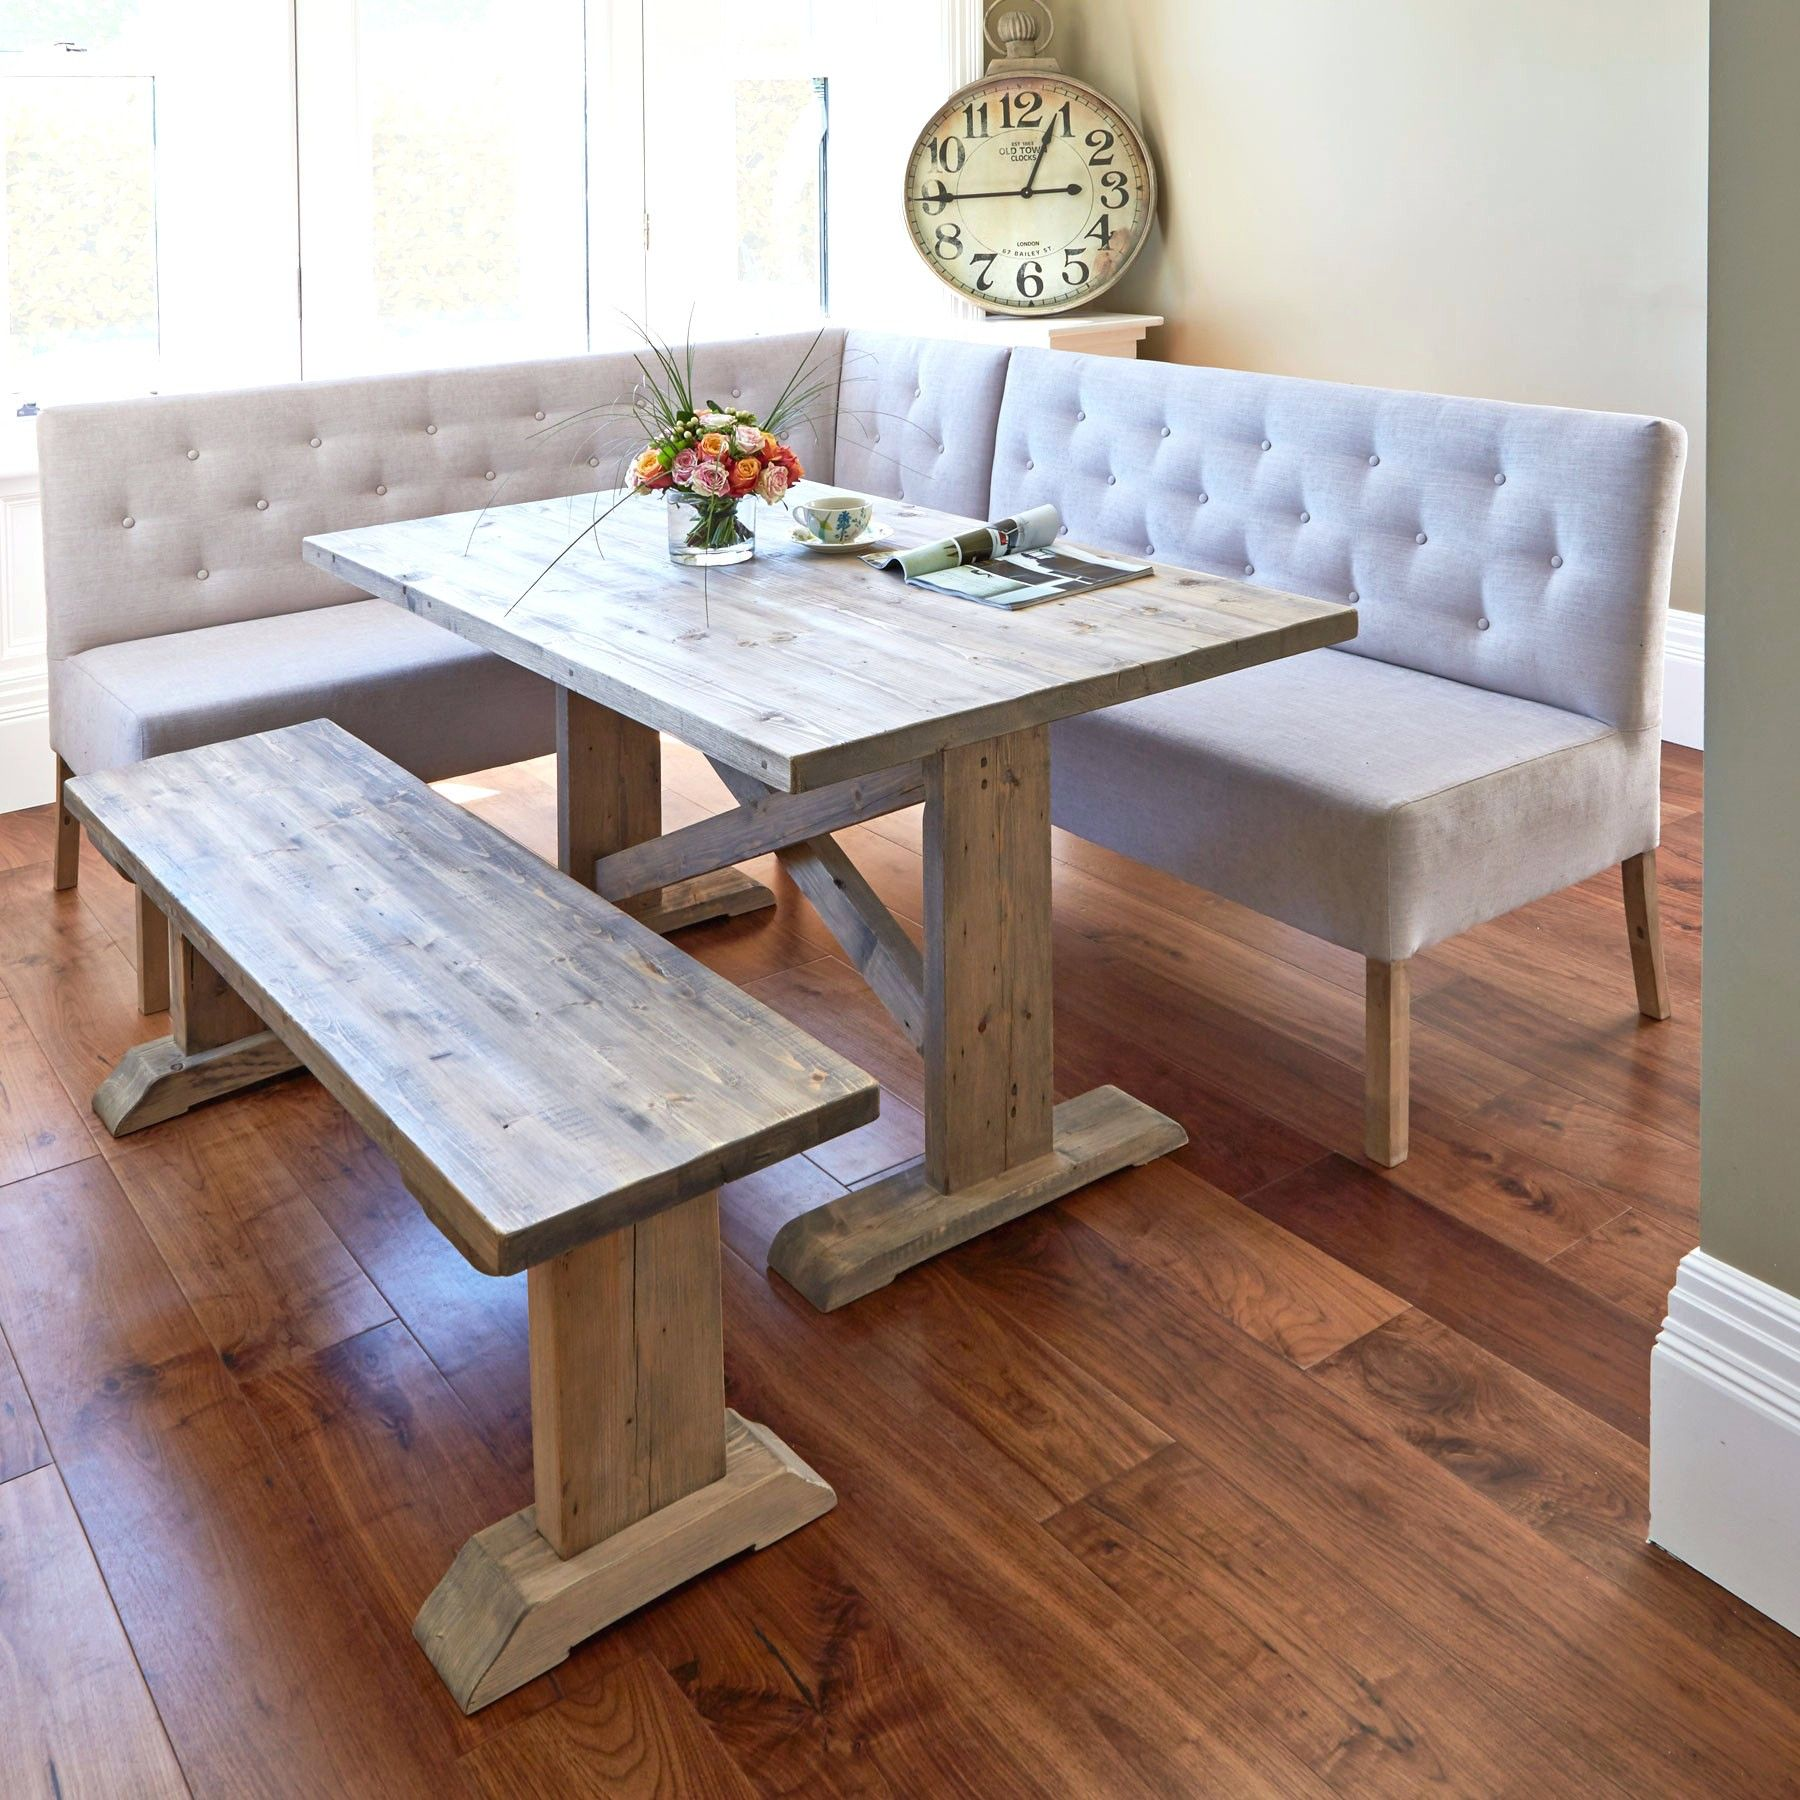 Corner Dining Table Ideas Collection Dining Tables Farmhouse Corner Dining Table Kitchen Table Settings Dining Room Small